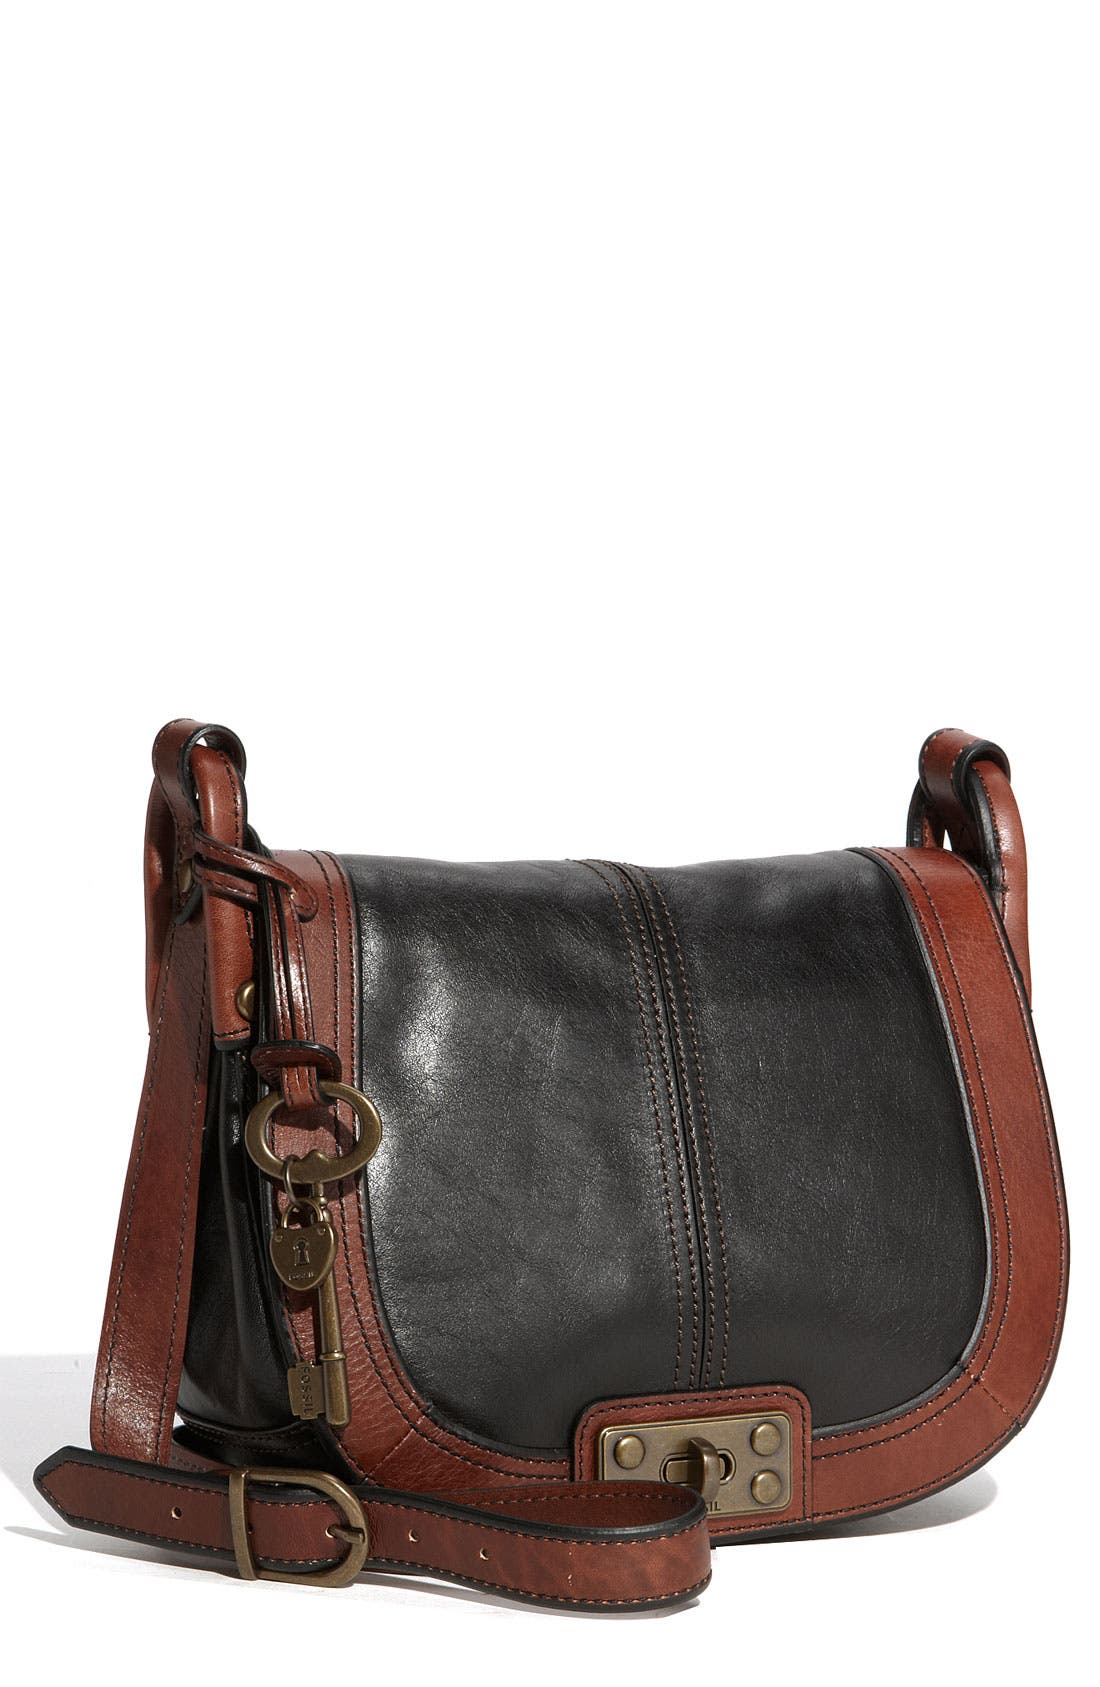 Main Image - Fossil Leather Crossbody Bag